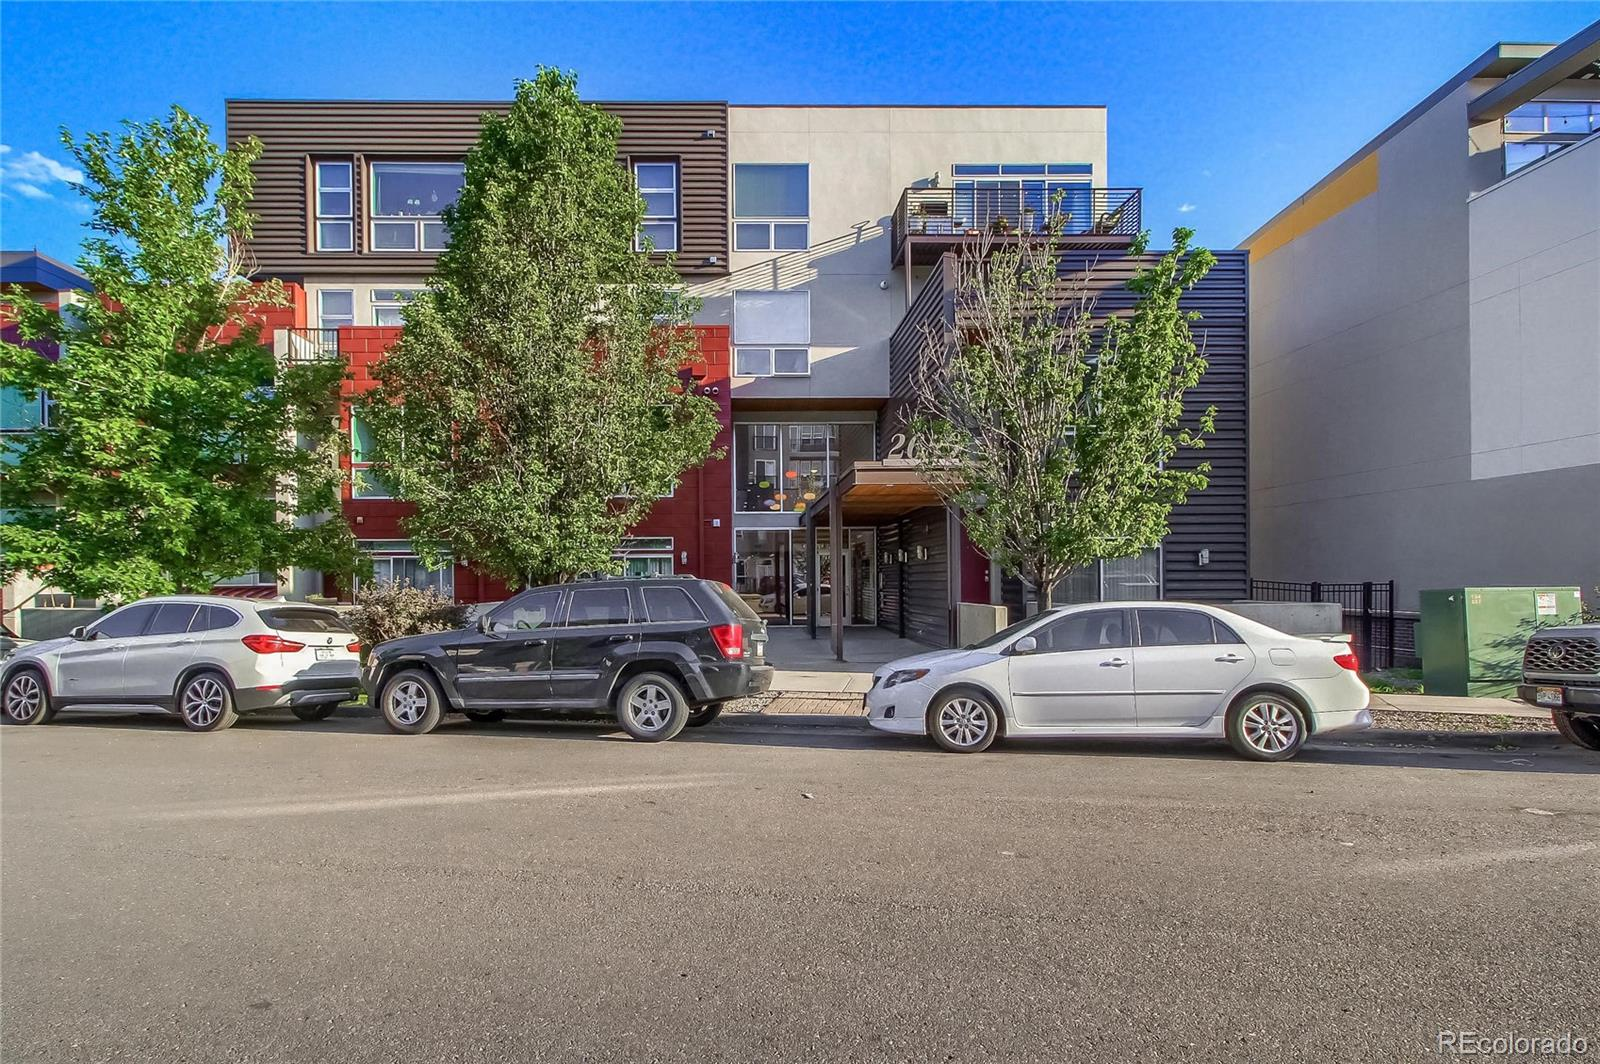 MLS# 7178614 - 1 - 2650 W Front View Drive #105, Denver, CO 80211